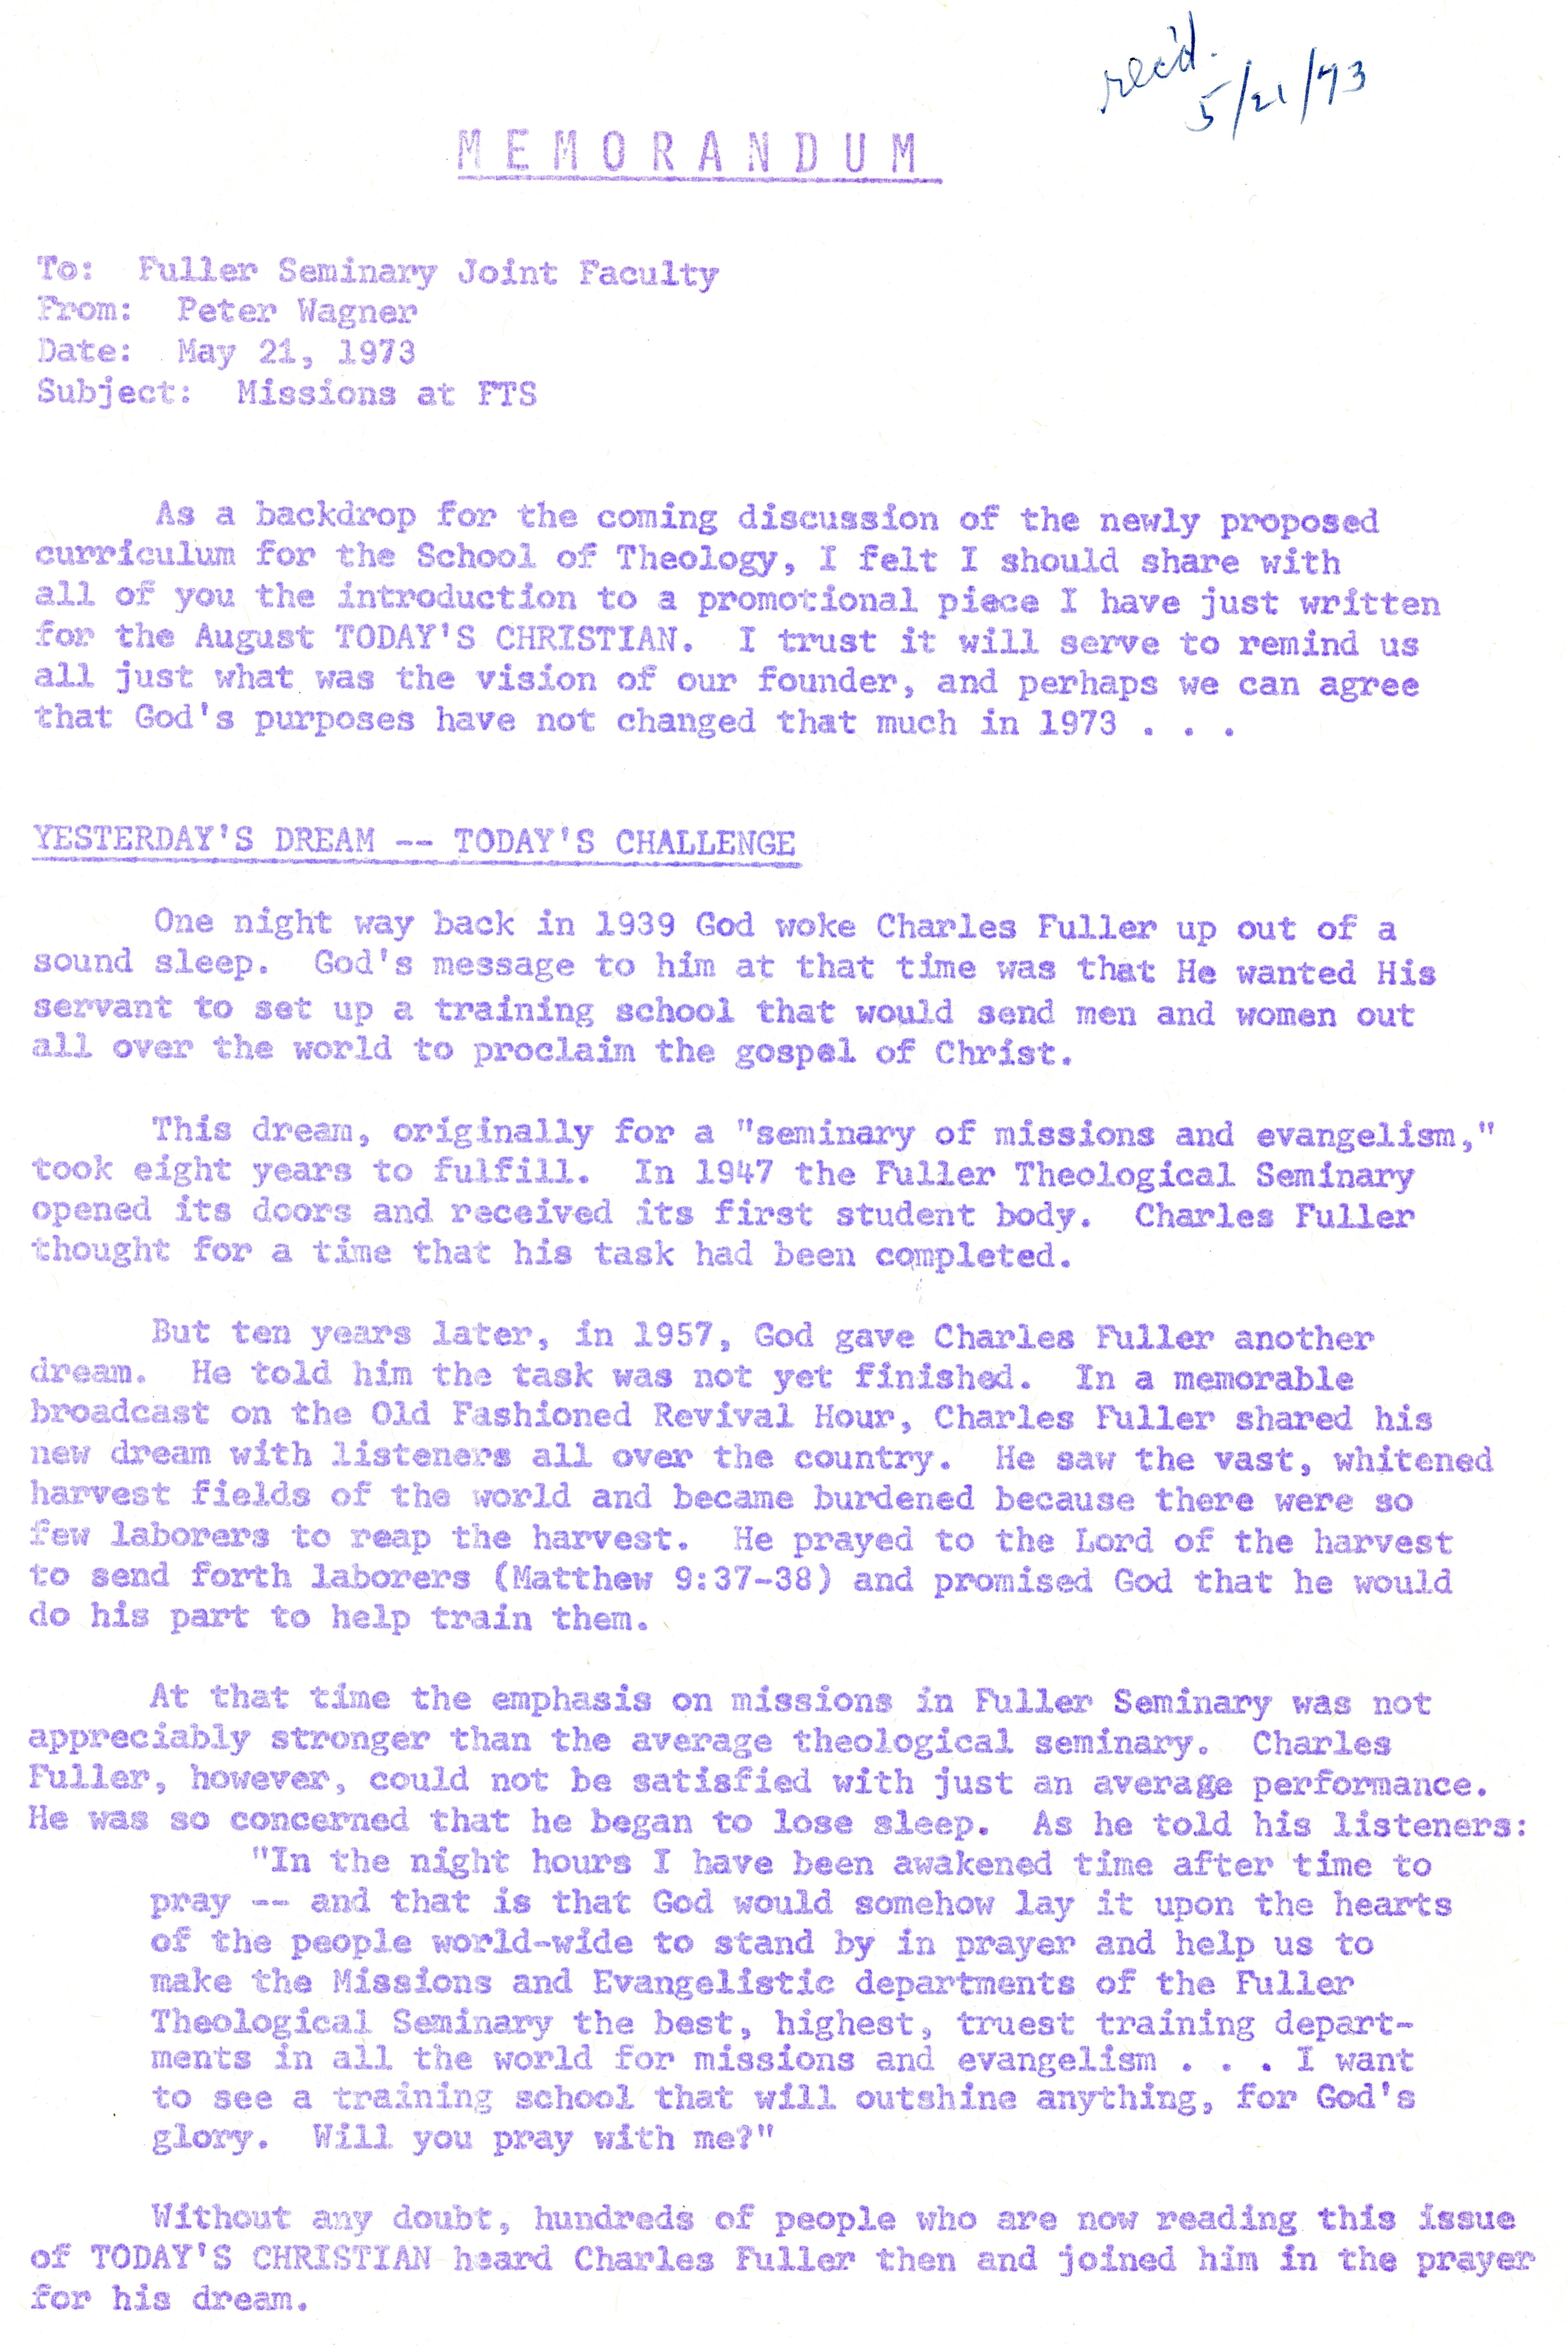 Wagner to Joint Faculty Memo 5 21 1973 p1